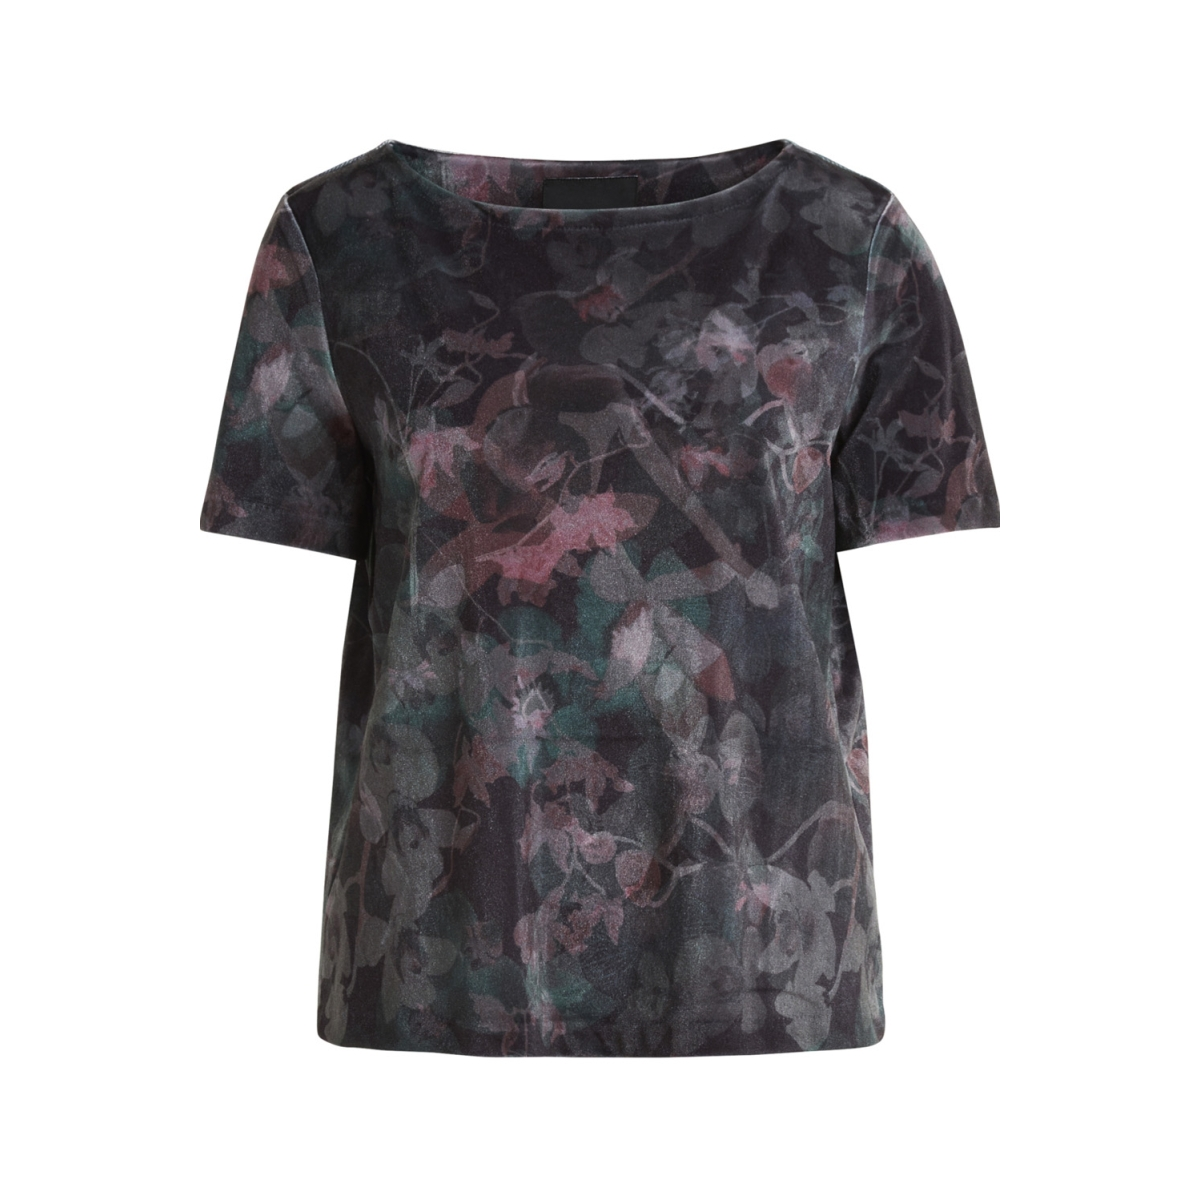 objnela s/s top 94 .c 23025749 object t-shirt black